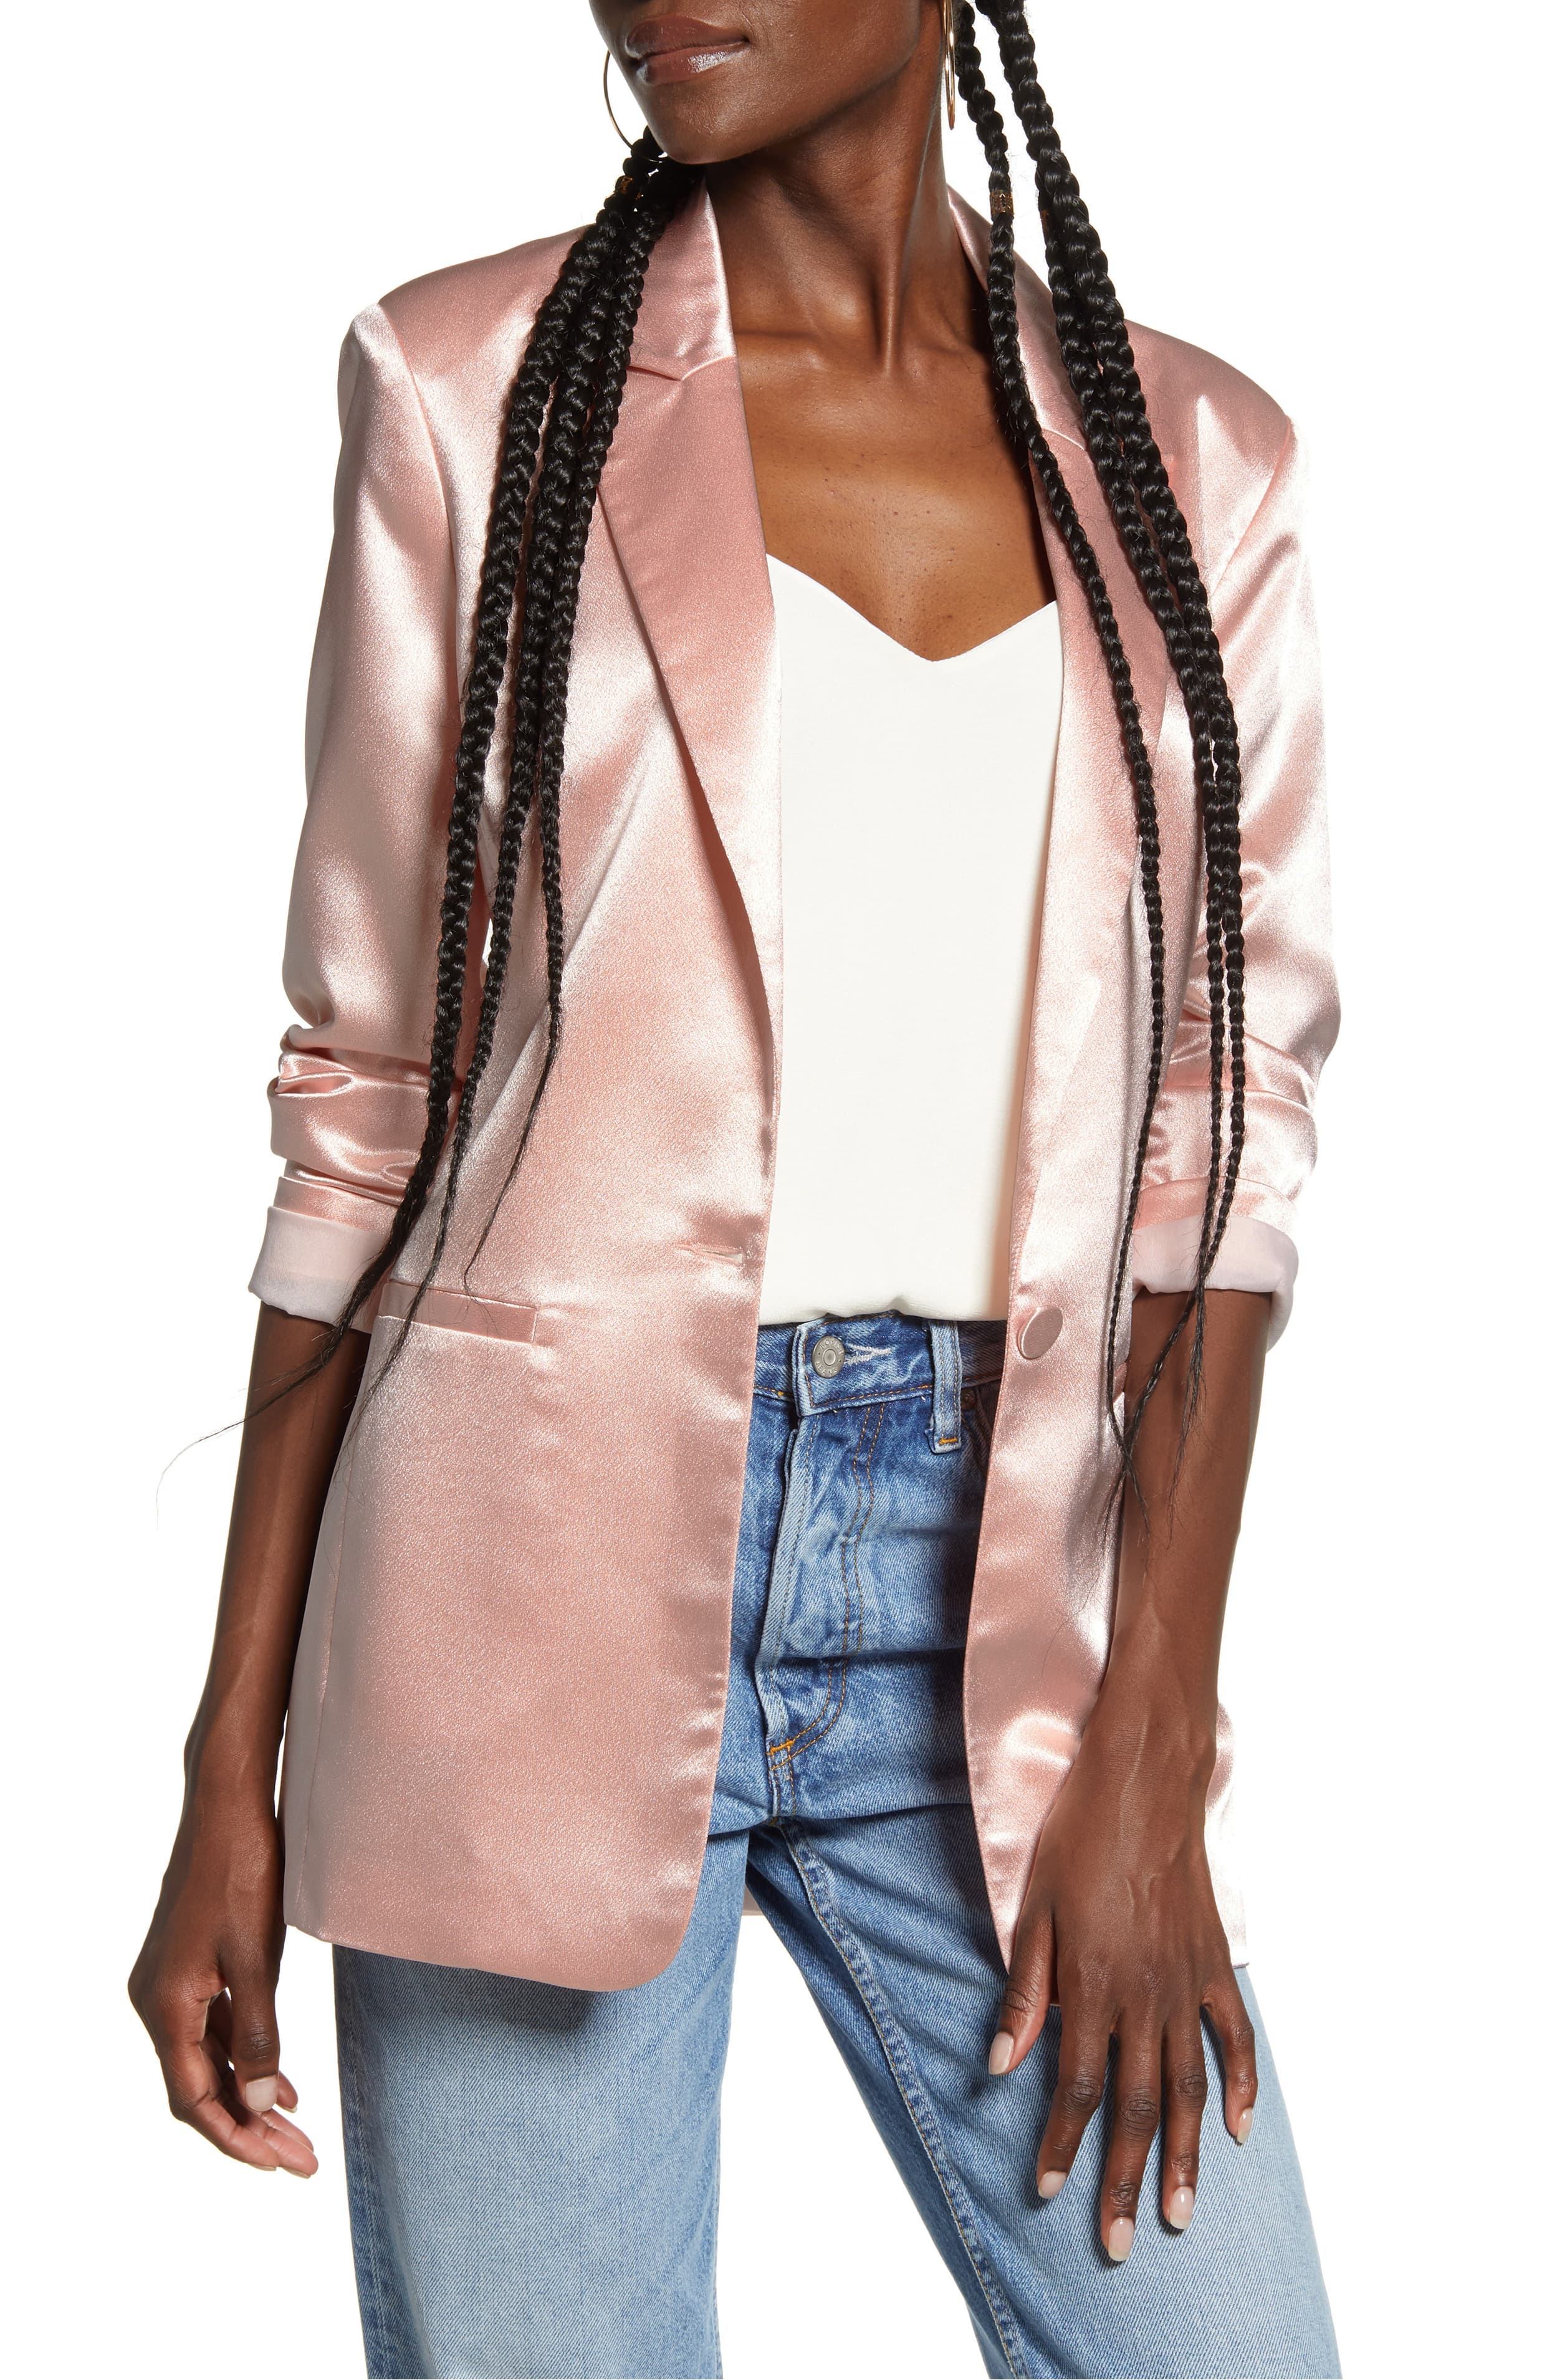 "<p>Elevate your look in this shimmery satin blazer cut in a longline tailored fit, bringing night-out polish to any occasion. $120{&nbsp;}</p><p><a  href=""https://shop.nordstrom.com/s/endless-rose-satin-front-button-jacket/5502429/full?origin=category-personalizedsort&breadcrumb=Home%2FWomen%2FShop%20by%20Occasion%2FNight%20Out&color=pink"" target=""_blank"" title=""https://shop.nordstrom.com/s/endless-rose-satin-front-button-jacket/5502429/full?origin=category-personalizedsort&breadcrumb=Home%2FWomen%2FShop%20by%20Occasion%2FNight%20Out&color=pink"">Shop it{&nbsp;}</a></p><p>(Image: Nordstrom){&nbsp;}</p>"